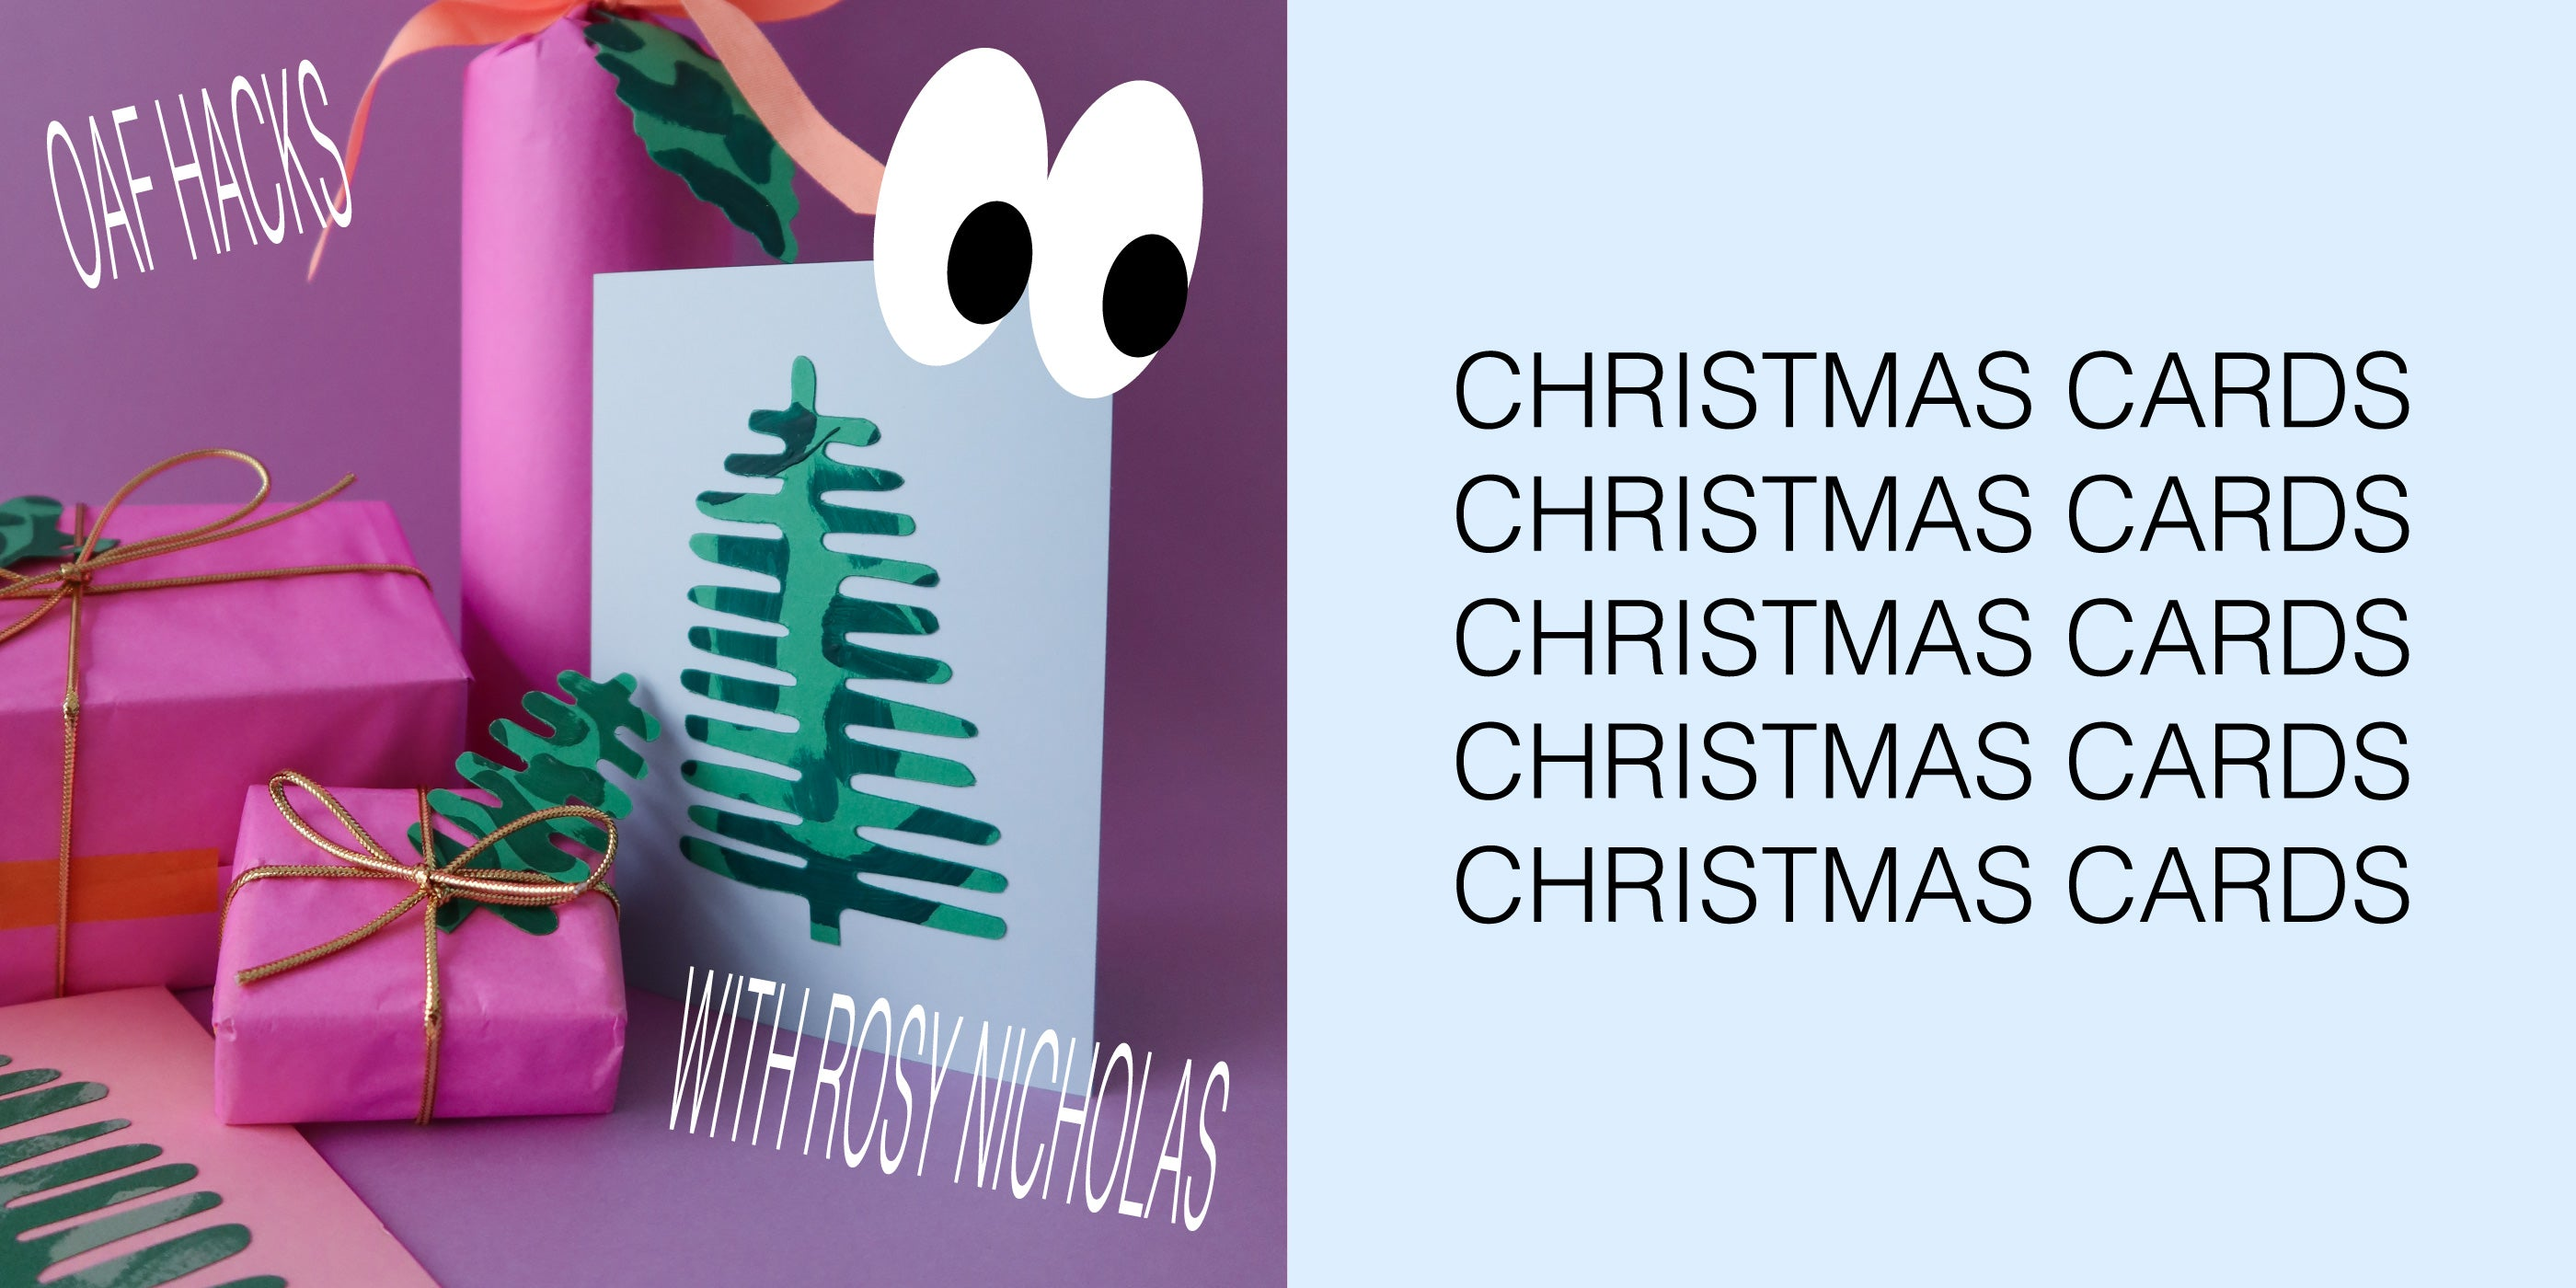 Oaf Hacks: Christmas Cards with Rosy Nicholas